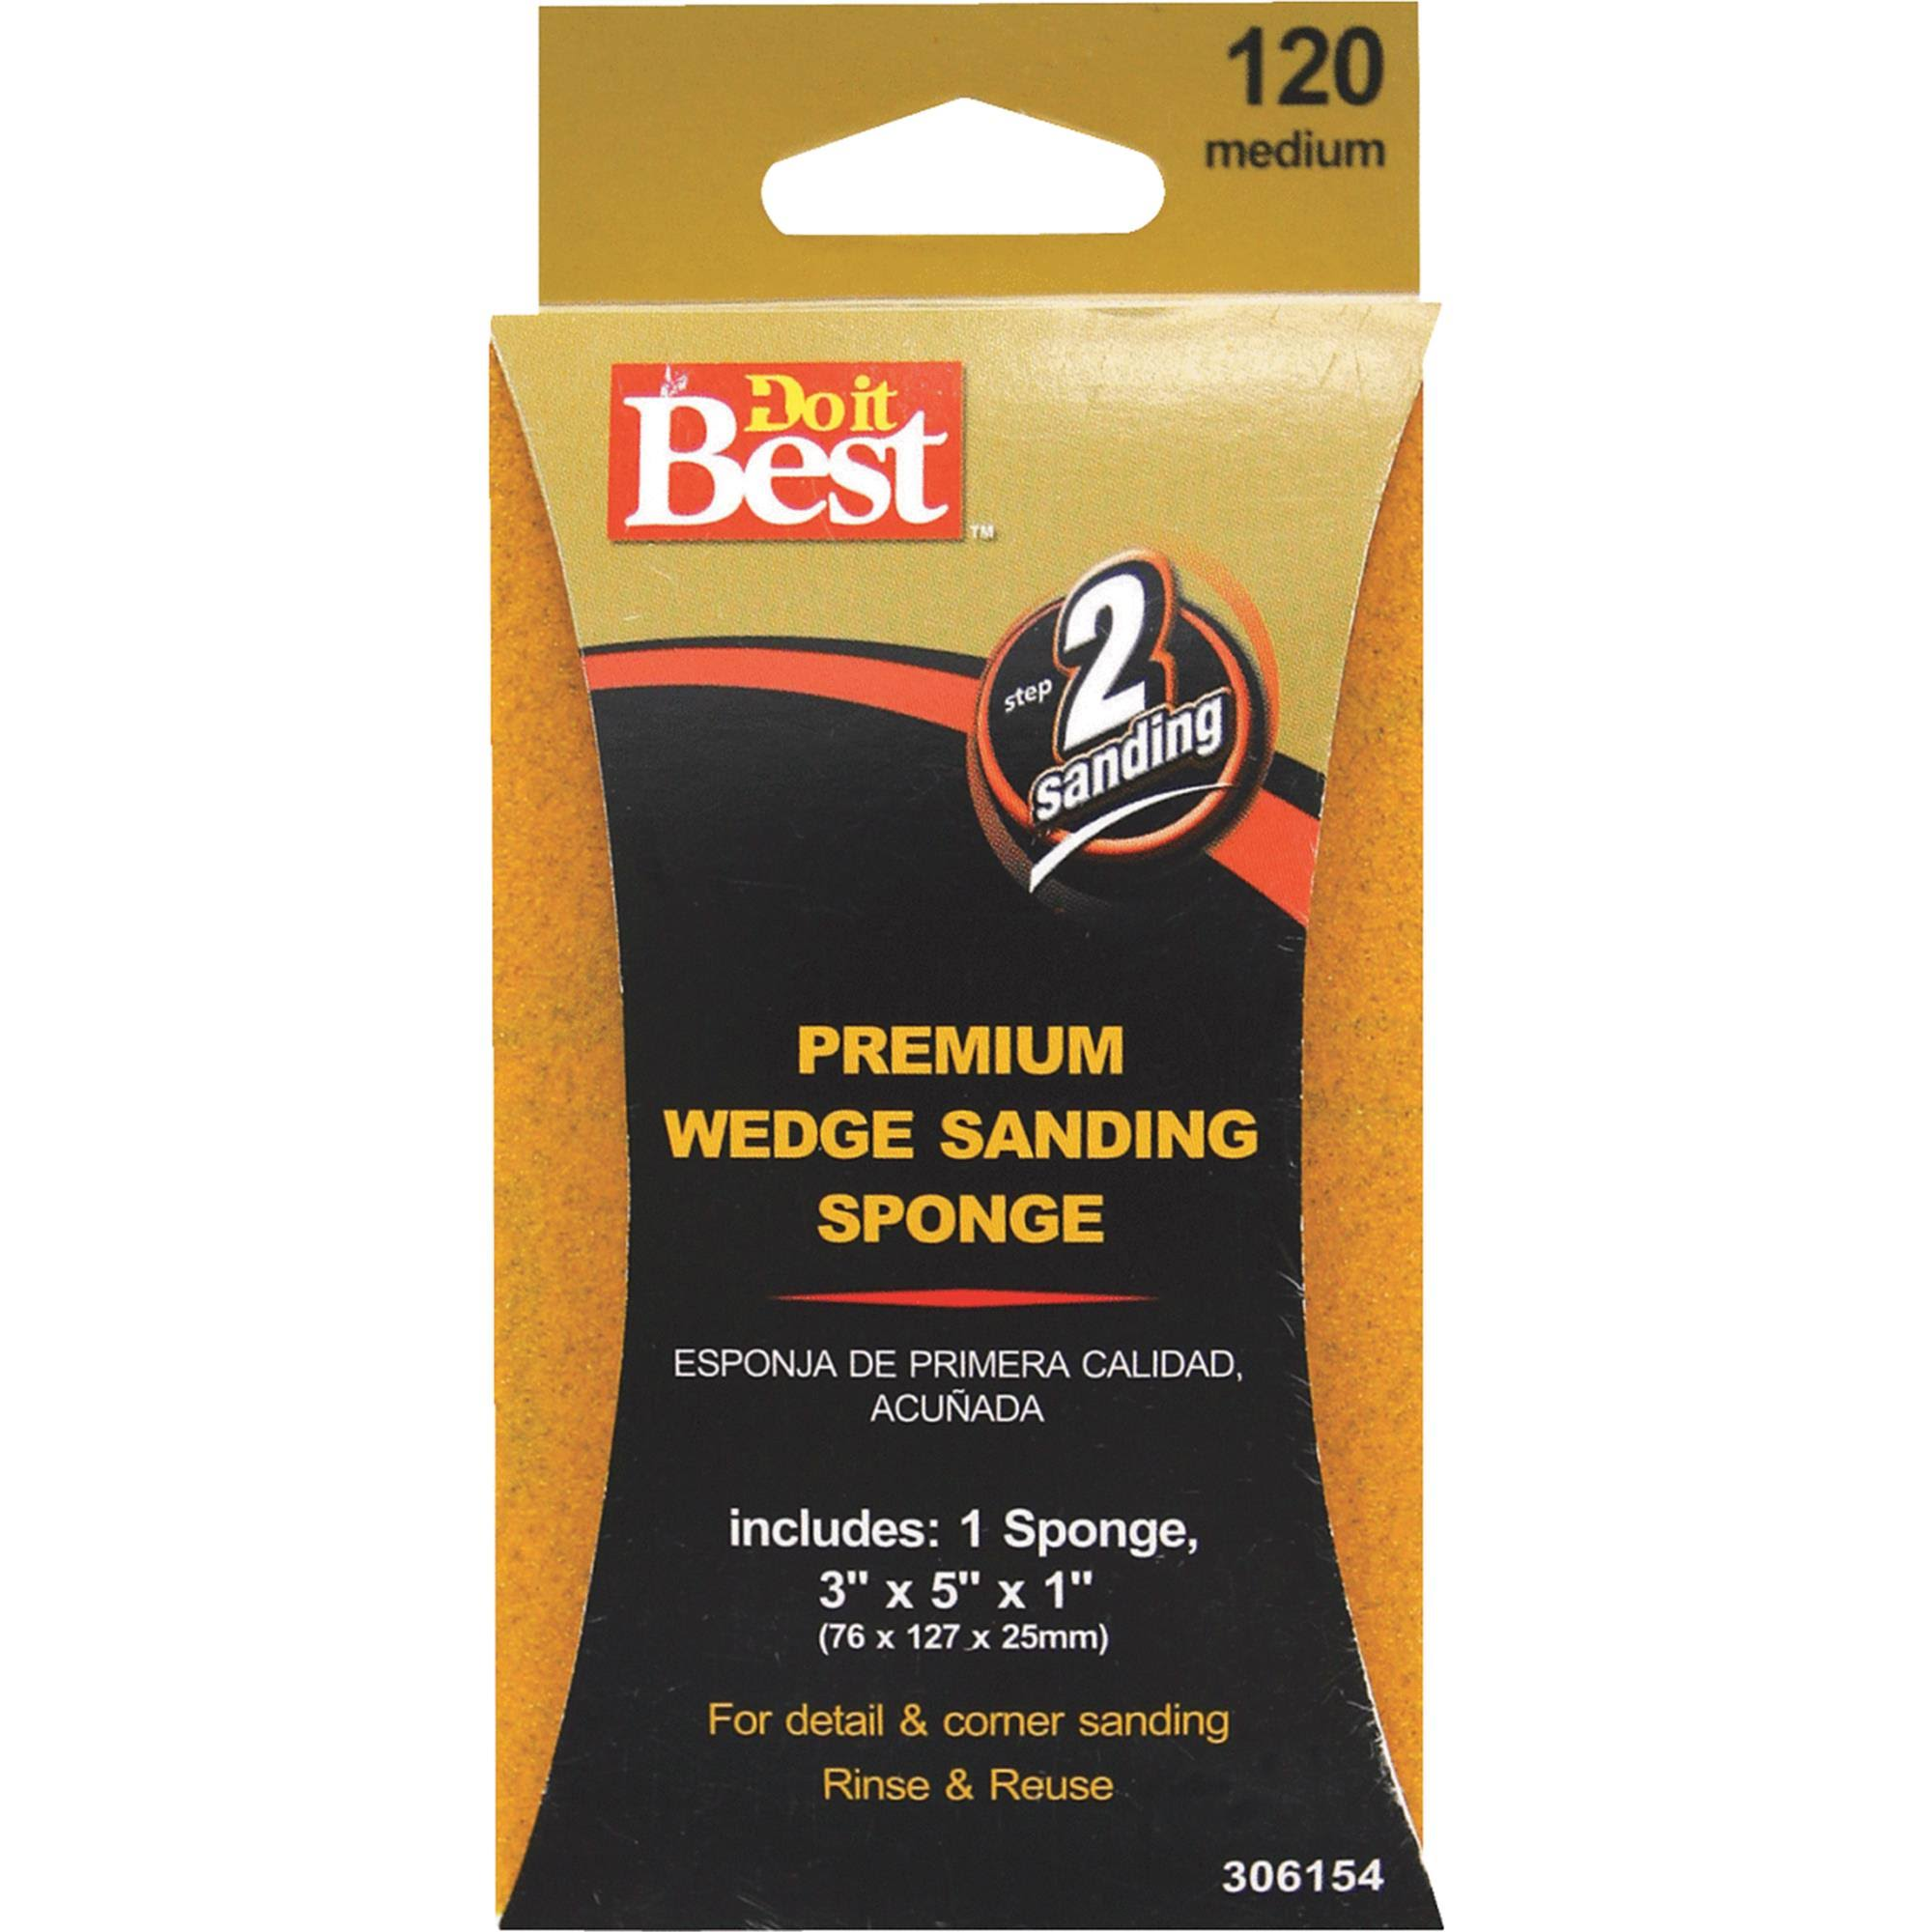 Do It Best Wedge Sanding Sponge - 120 Medium